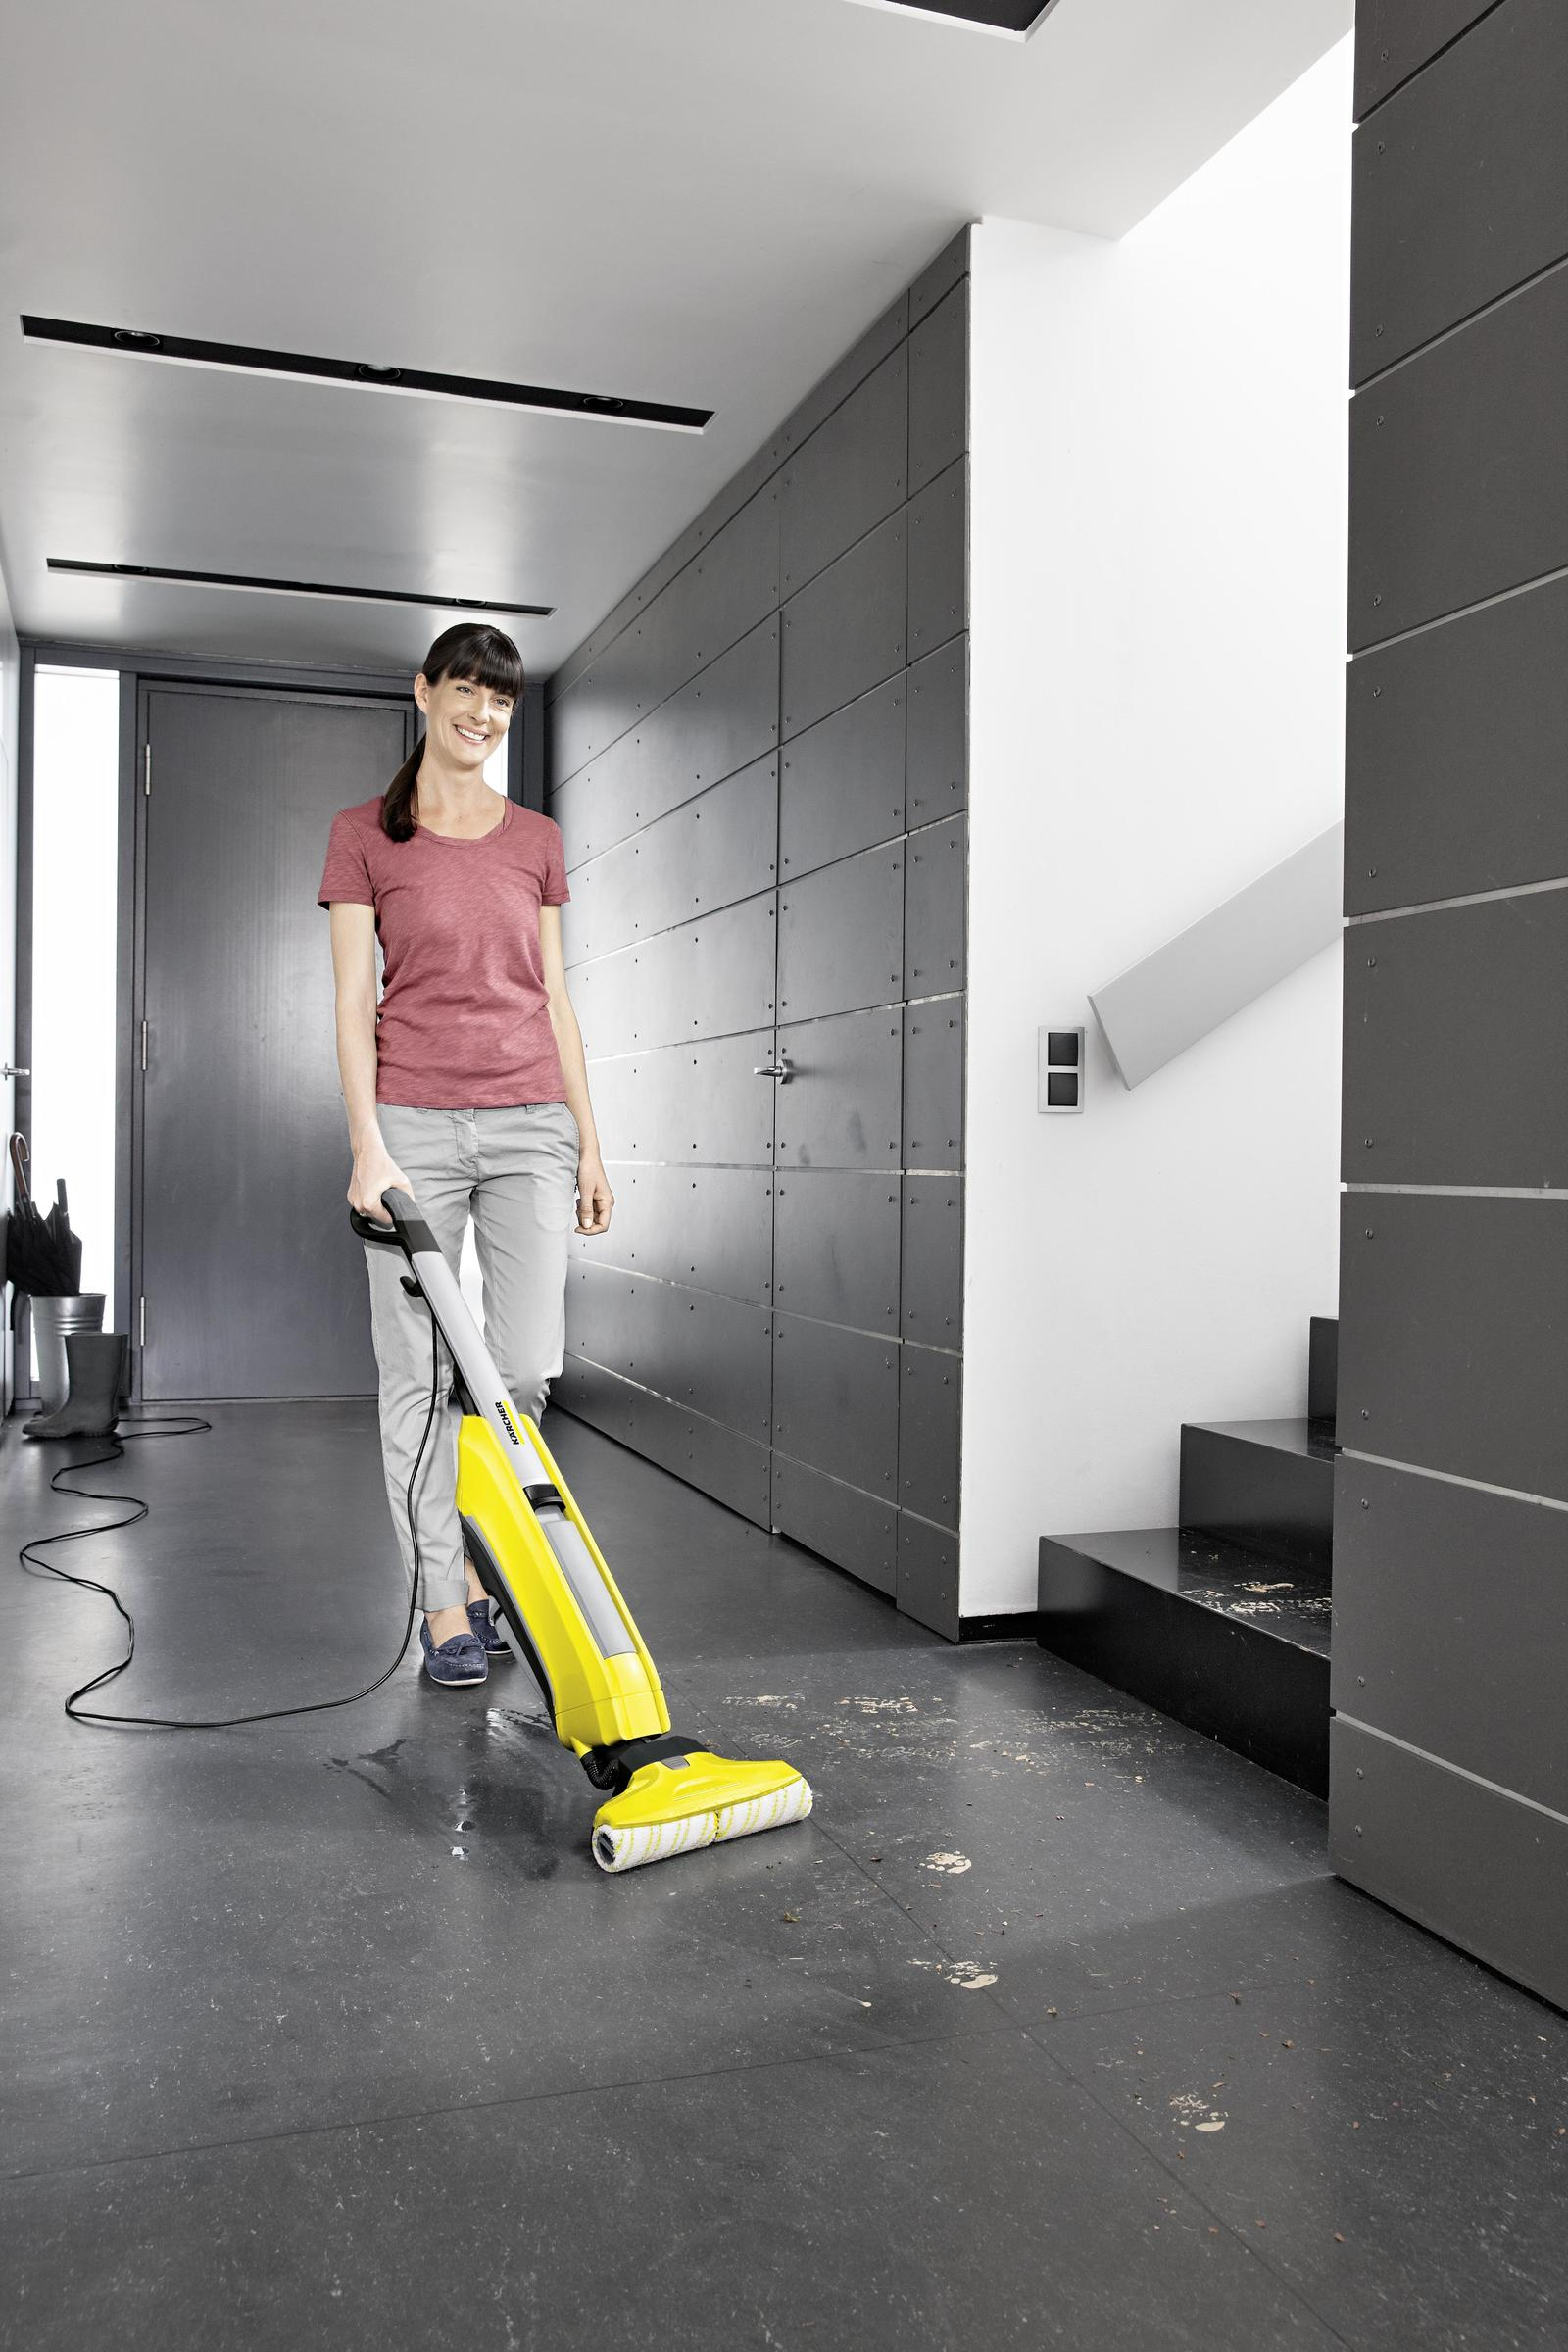 fc 5 hard floor cleaner karcher australia. Black Bedroom Furniture Sets. Home Design Ideas